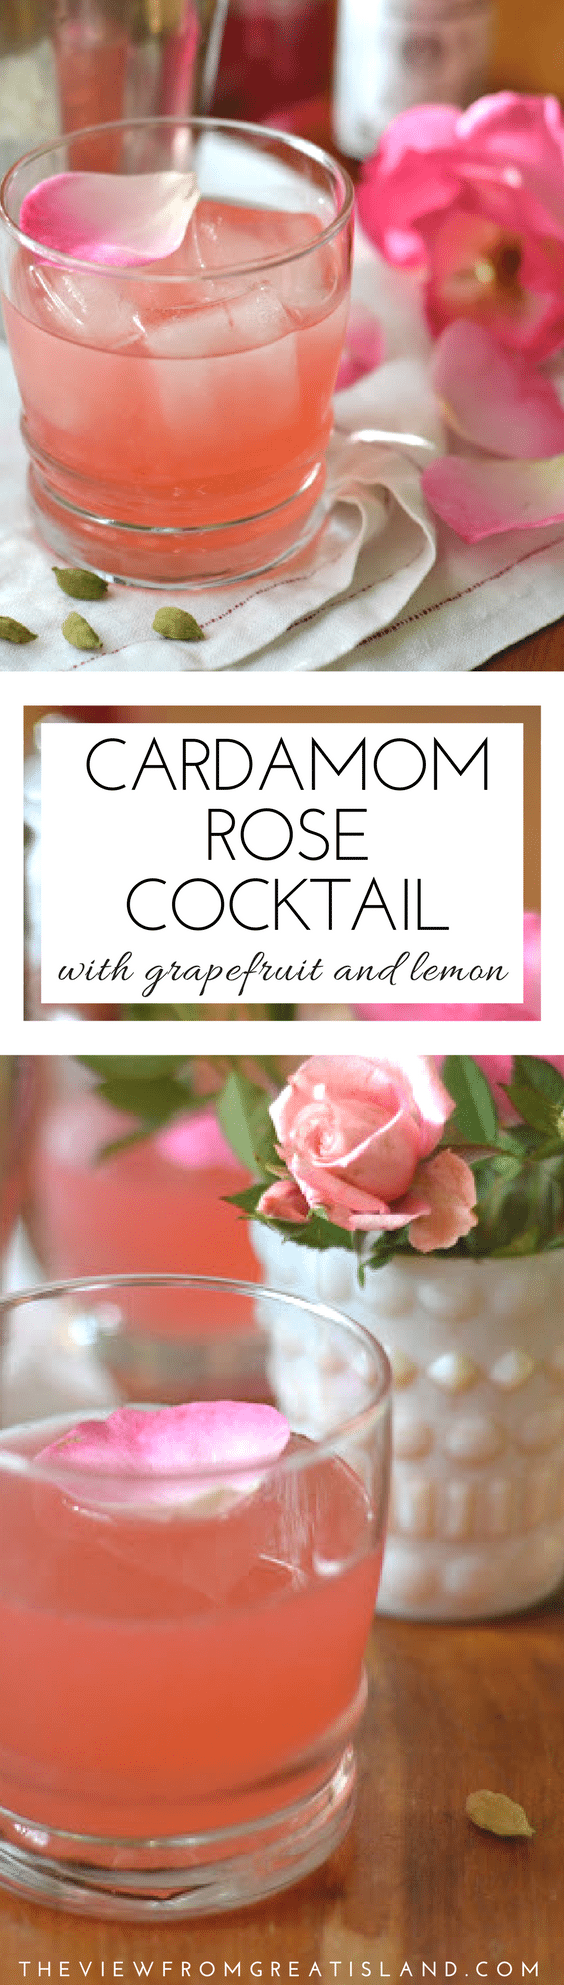 The Cardamom Rose Cocktail is a special occasion cocktail that will take you from New Year's Eve, to Valentine's Day, and all the way back to the winter holidays! #cocktail #cardamom #peychaudsbitters #gin #rose #edibleflowers #rosecocktail #cardamomcocktail #valentinesdaycocktail #grapefruitcocktail